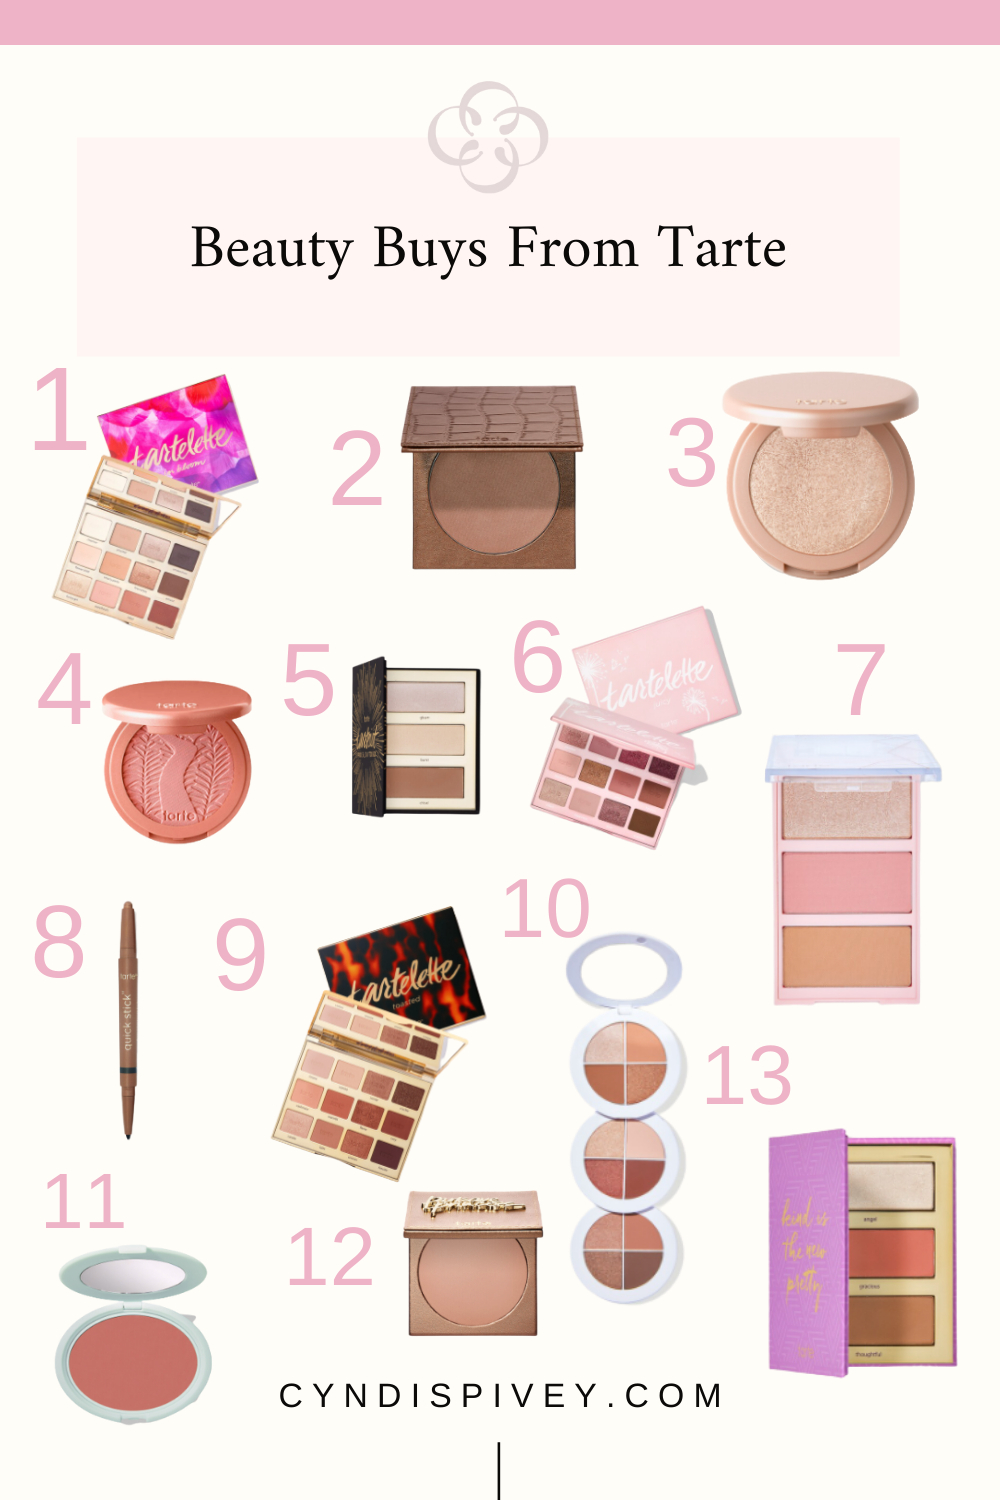 Beauty Buys From Tarte